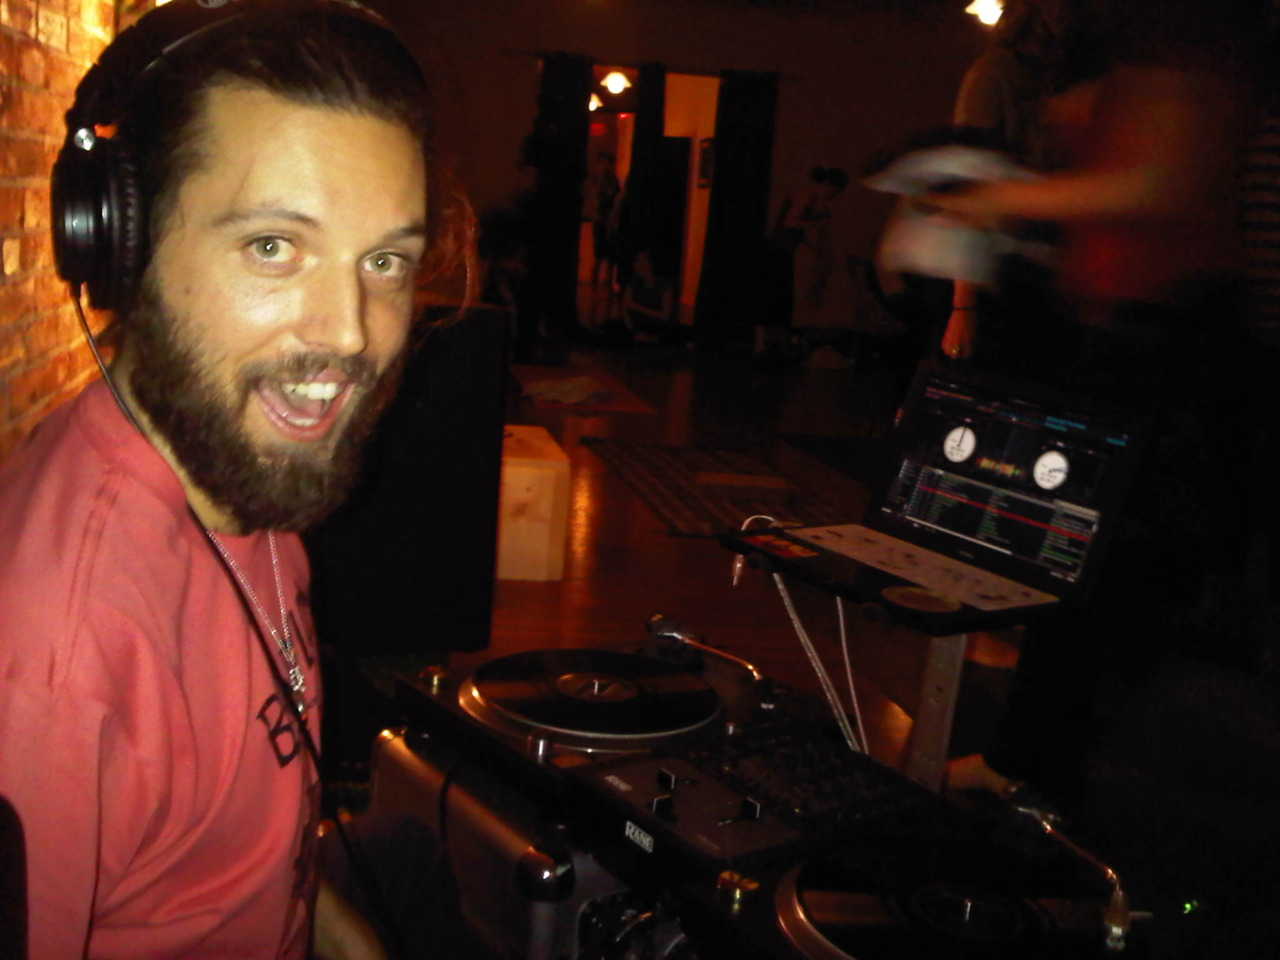 Reno spinning reggae for Ryan Leier's workshop at yoga for the people… Good vibes!